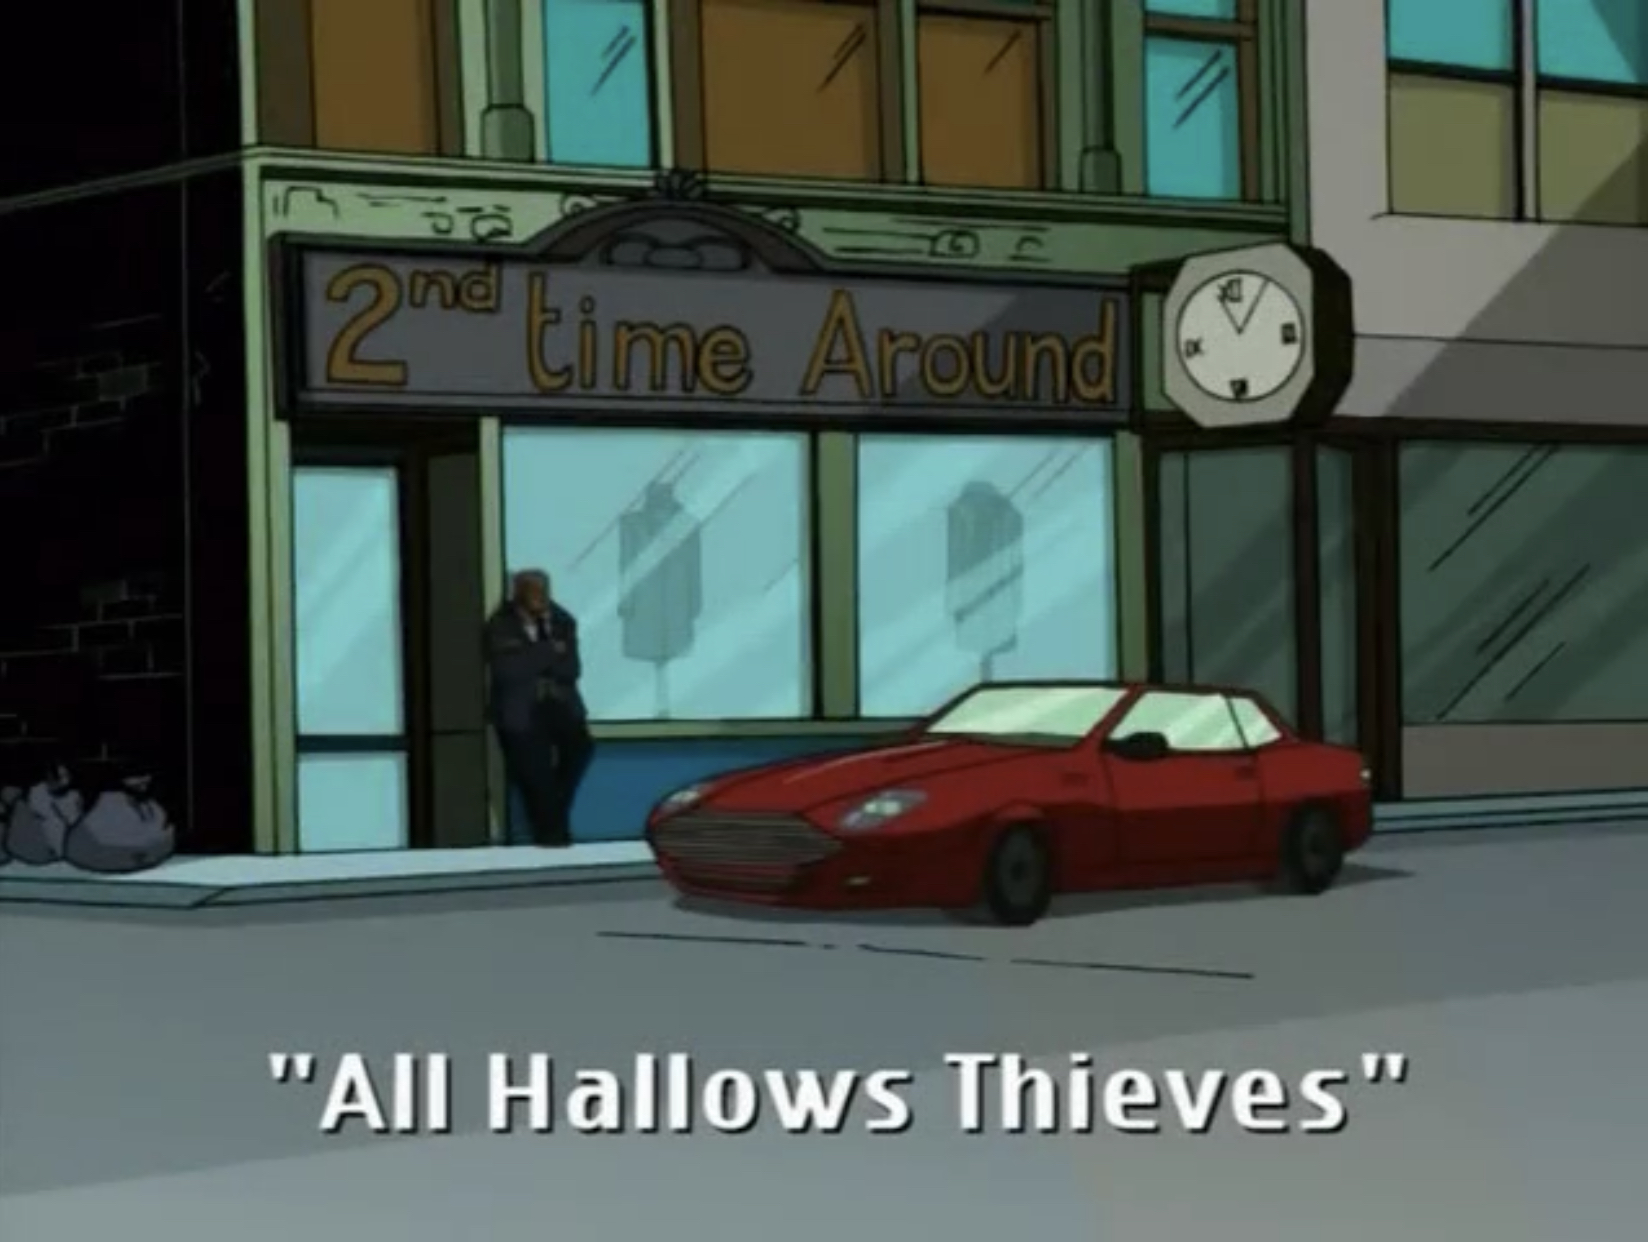 All Hallows Thieves